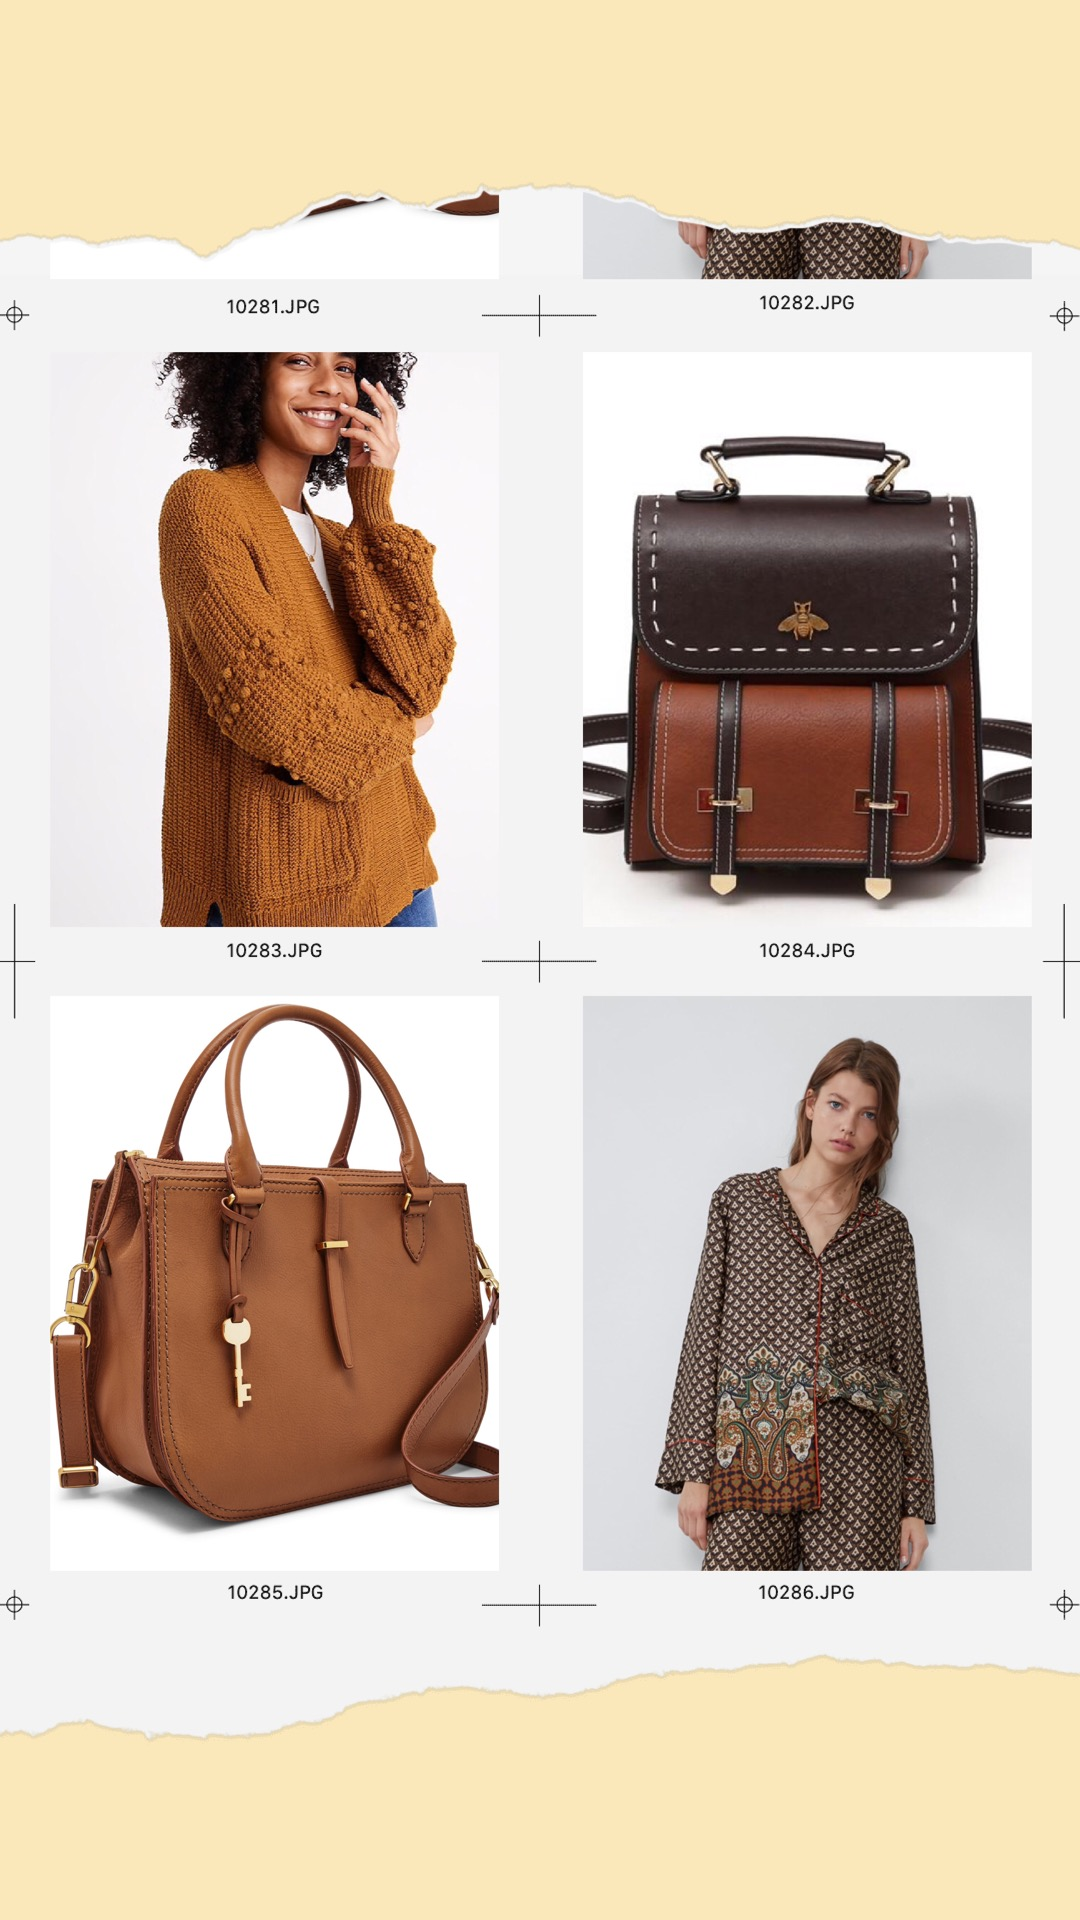 - MADEWELL:Bobble Cardigan Sweater $98.00Travel Starter Pack:Bumblebee Leather Backpack $41.00Fossil:RYDER SATCHELZara:PRINTED SHIRT WITH PIPING $39.00